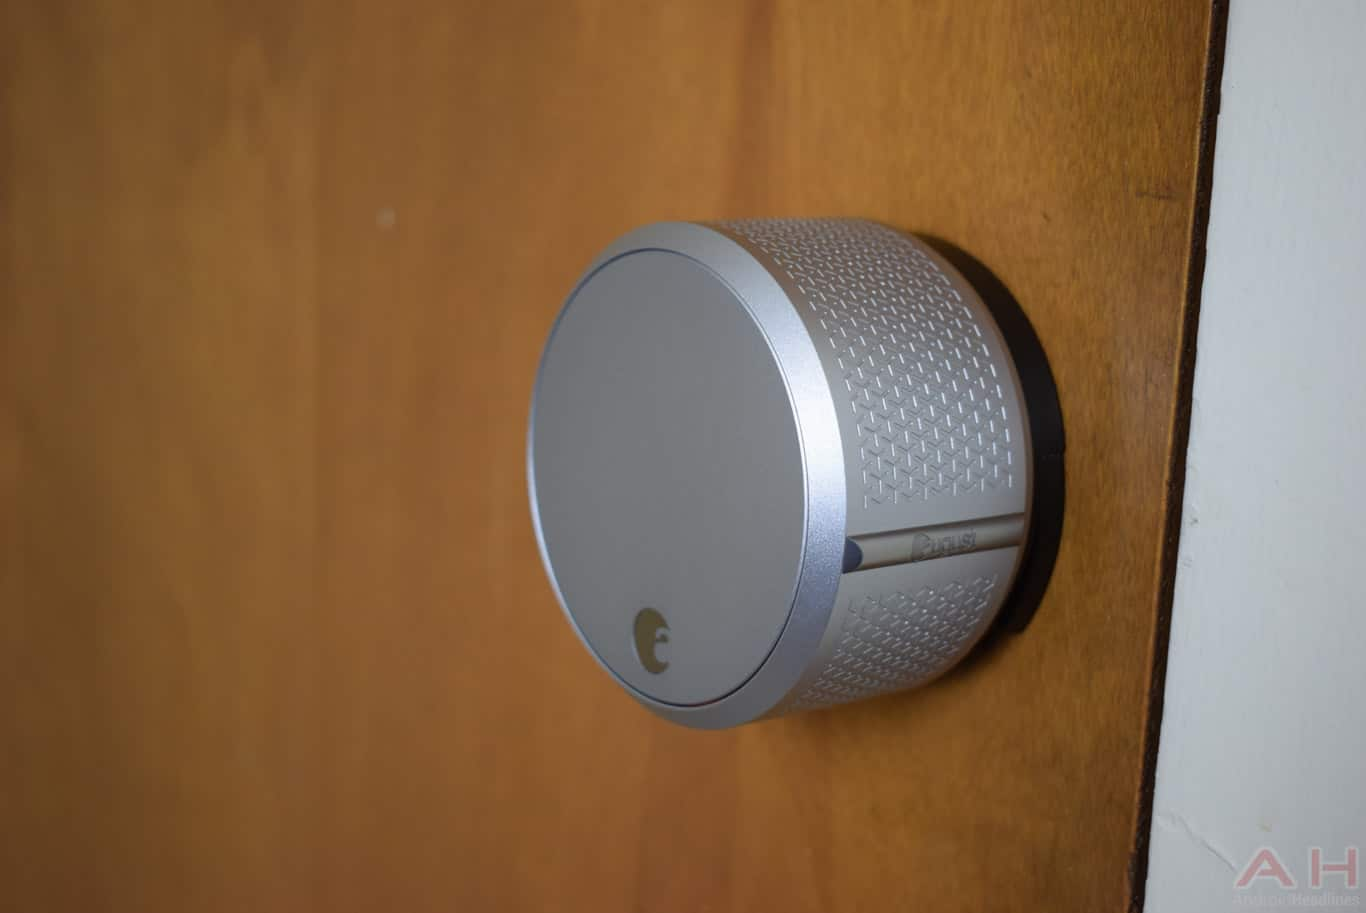 August Home Smart Lock Pro Review AM AH 5